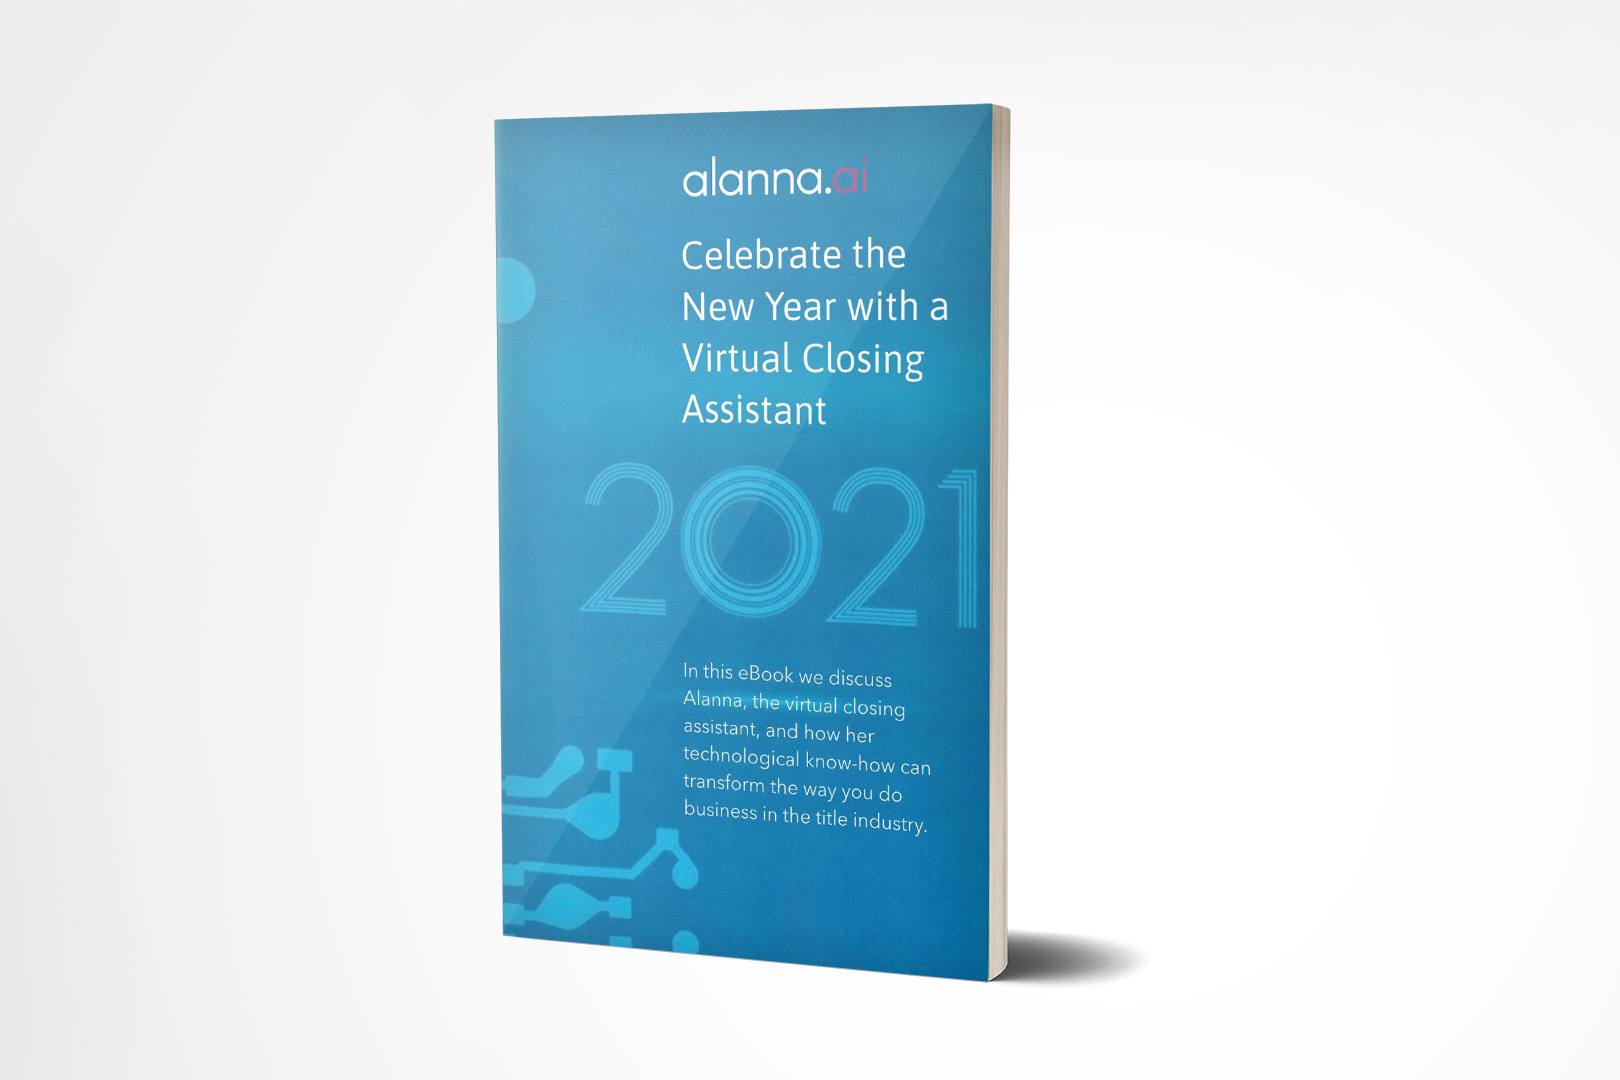 Celebrate the New Year with a Virtual Closing Assistant